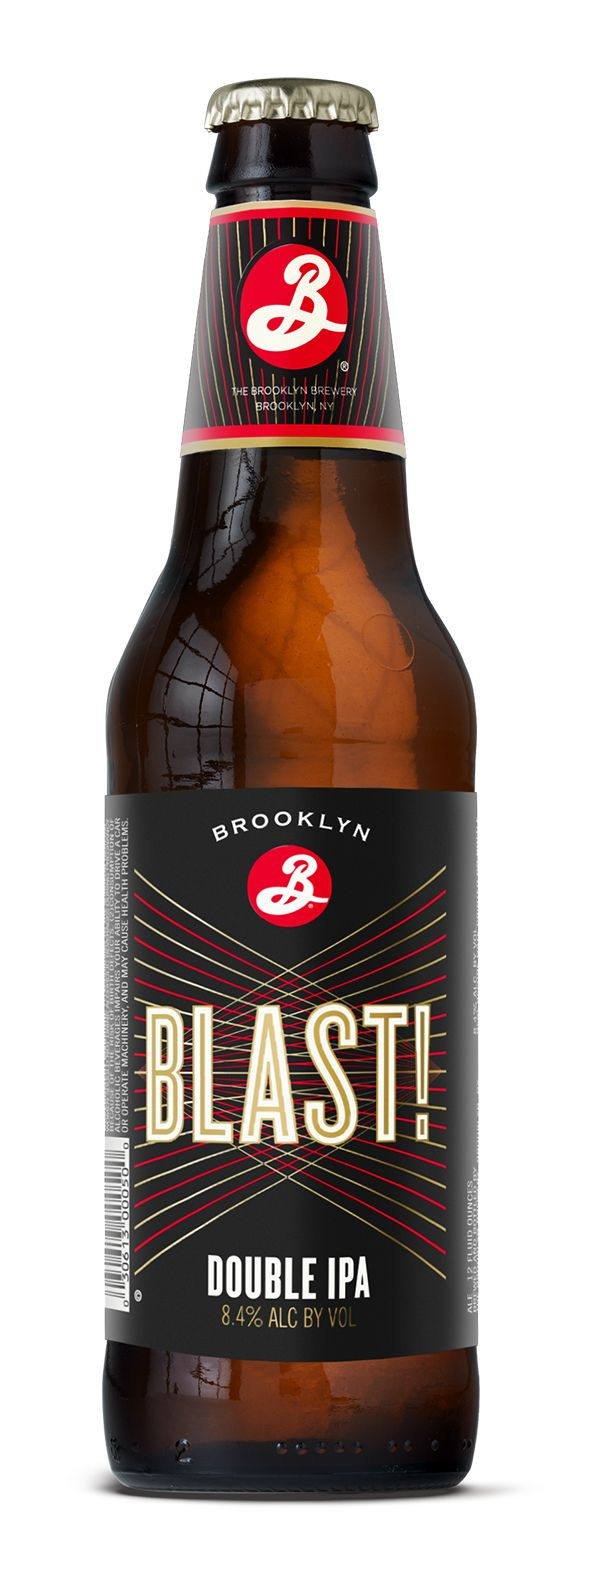 It's Nice That : Milton Glaser creates new look for Brooklyn Brewery's BLAST! IPA